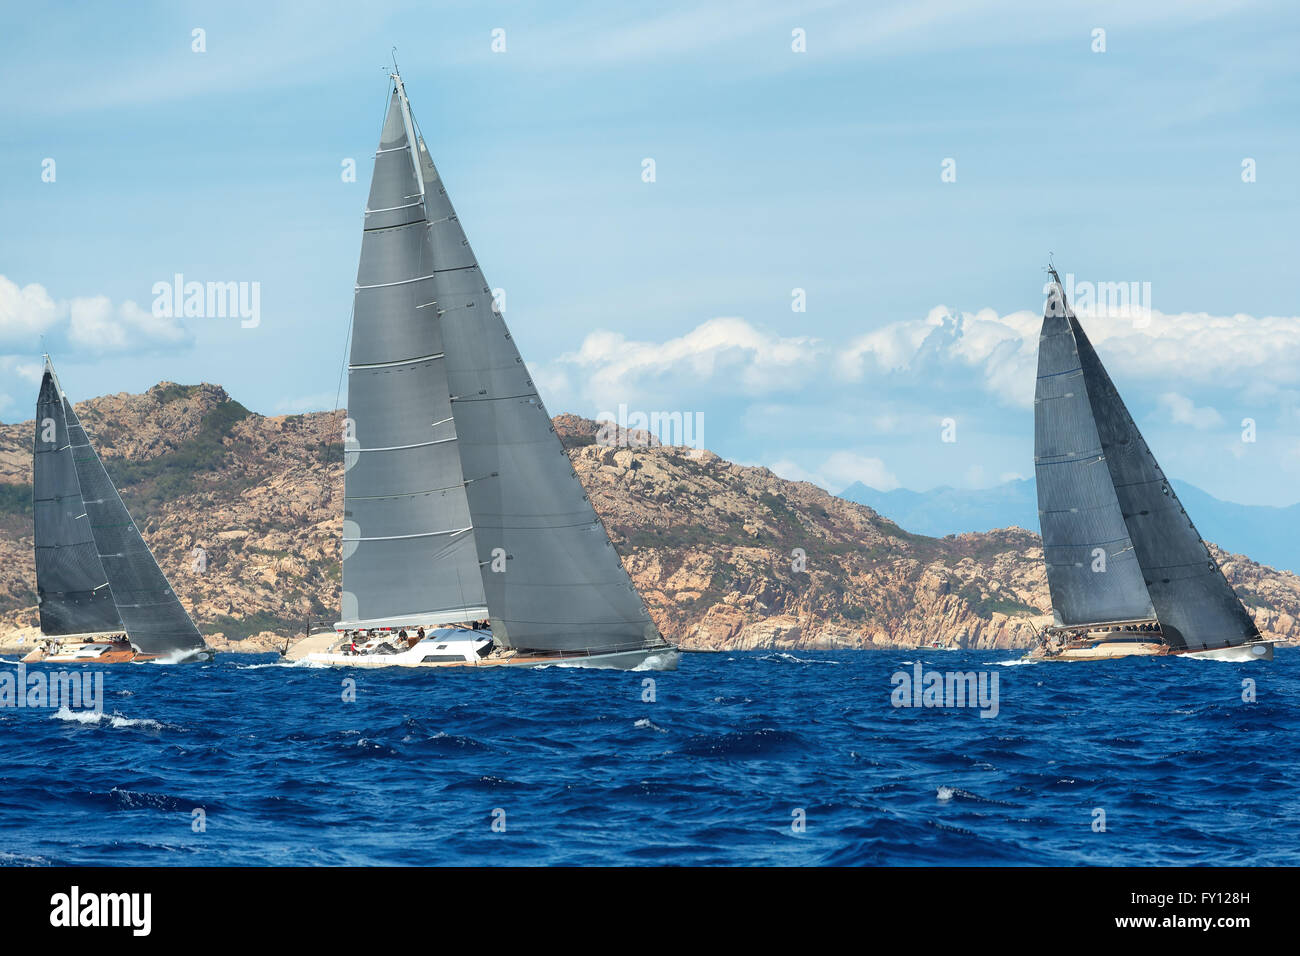 group yacht sailing in regatta - Stock Image